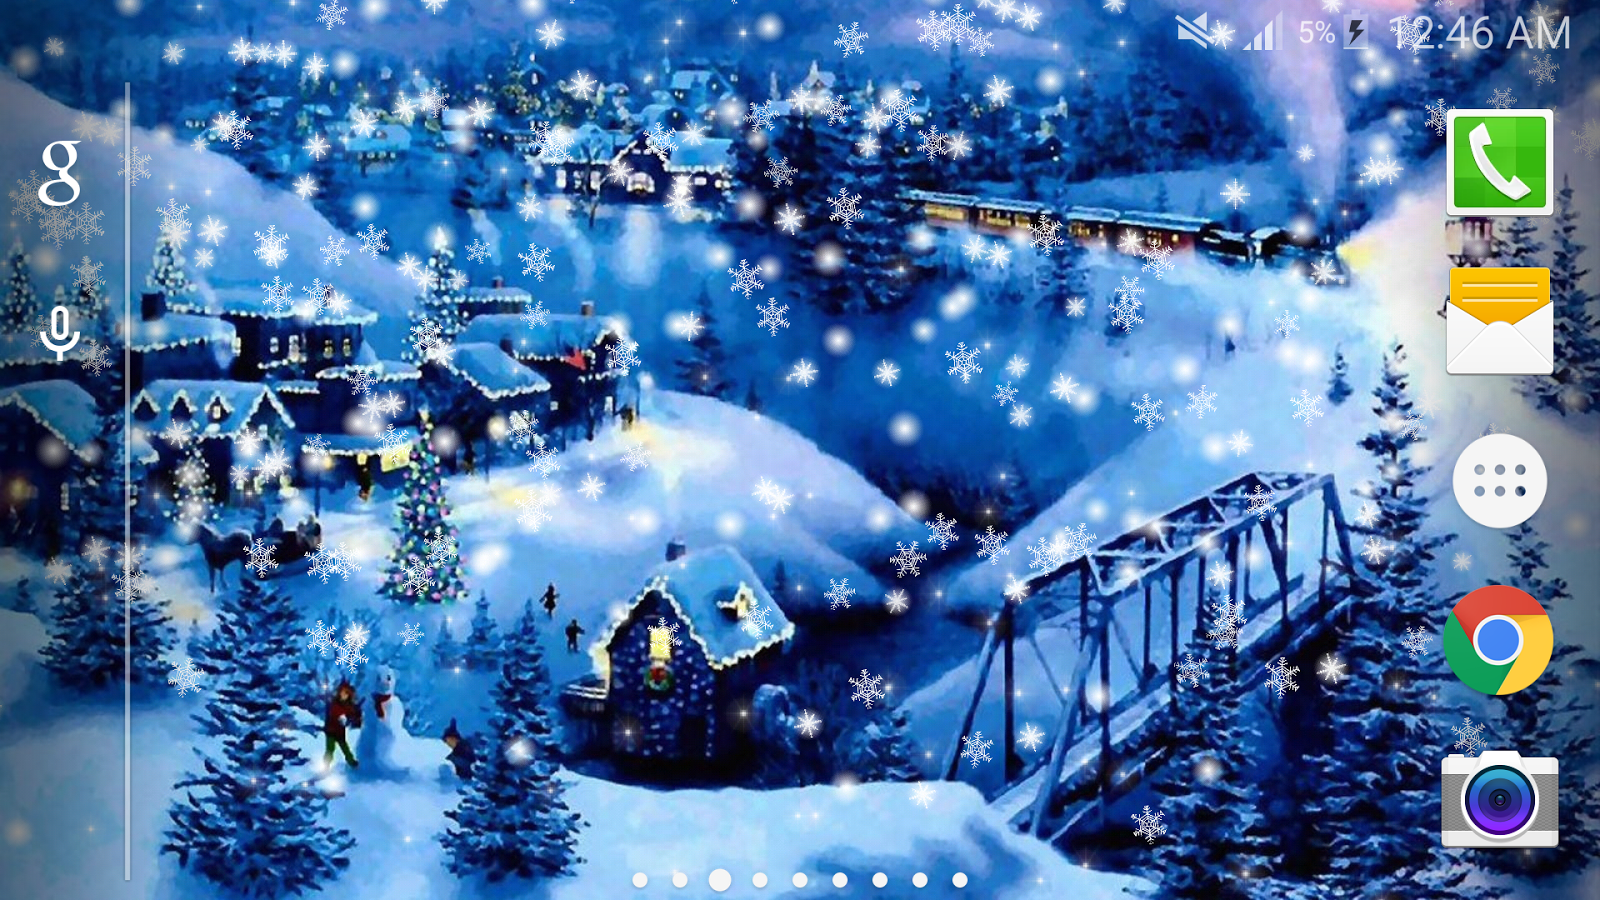 Snow night city wallpaper pro android apps on google play - Snow night city wallpaper ...